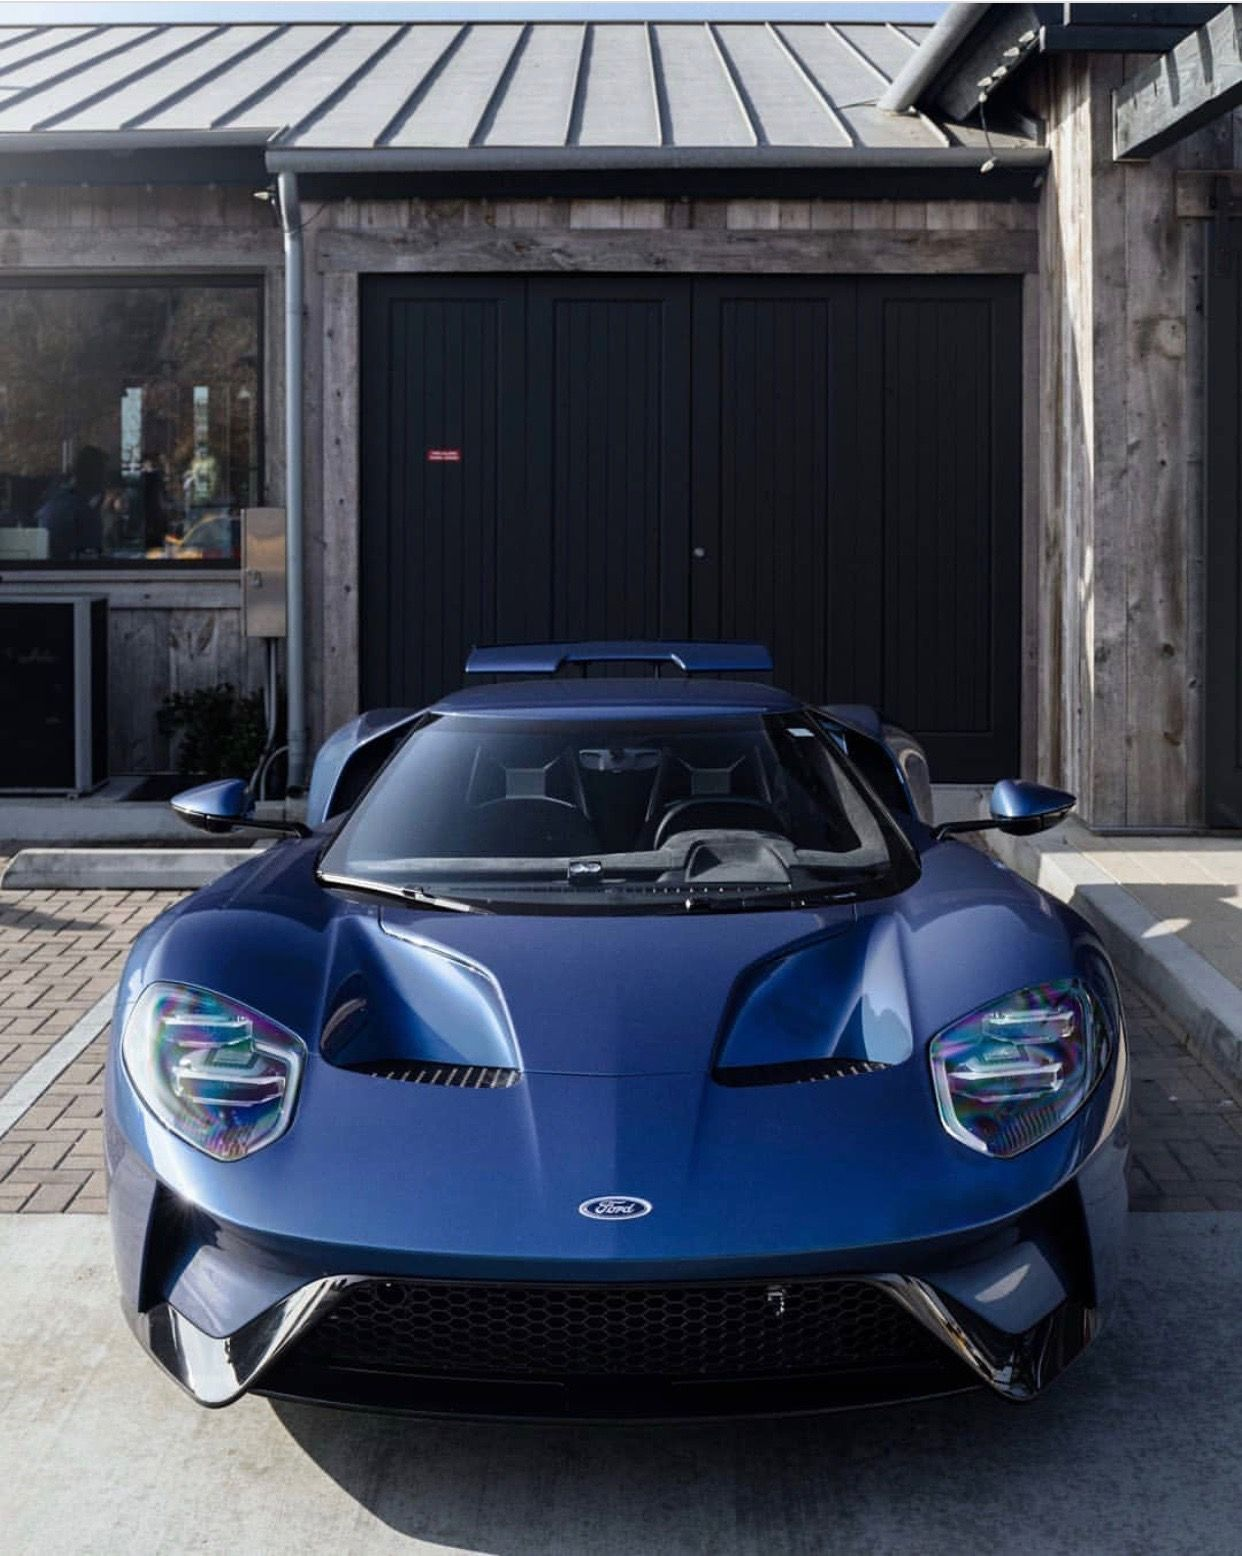 Ford Gt Painted In Liquid Blue Photo Taken By Theonetruemo On Instagram Fordgt